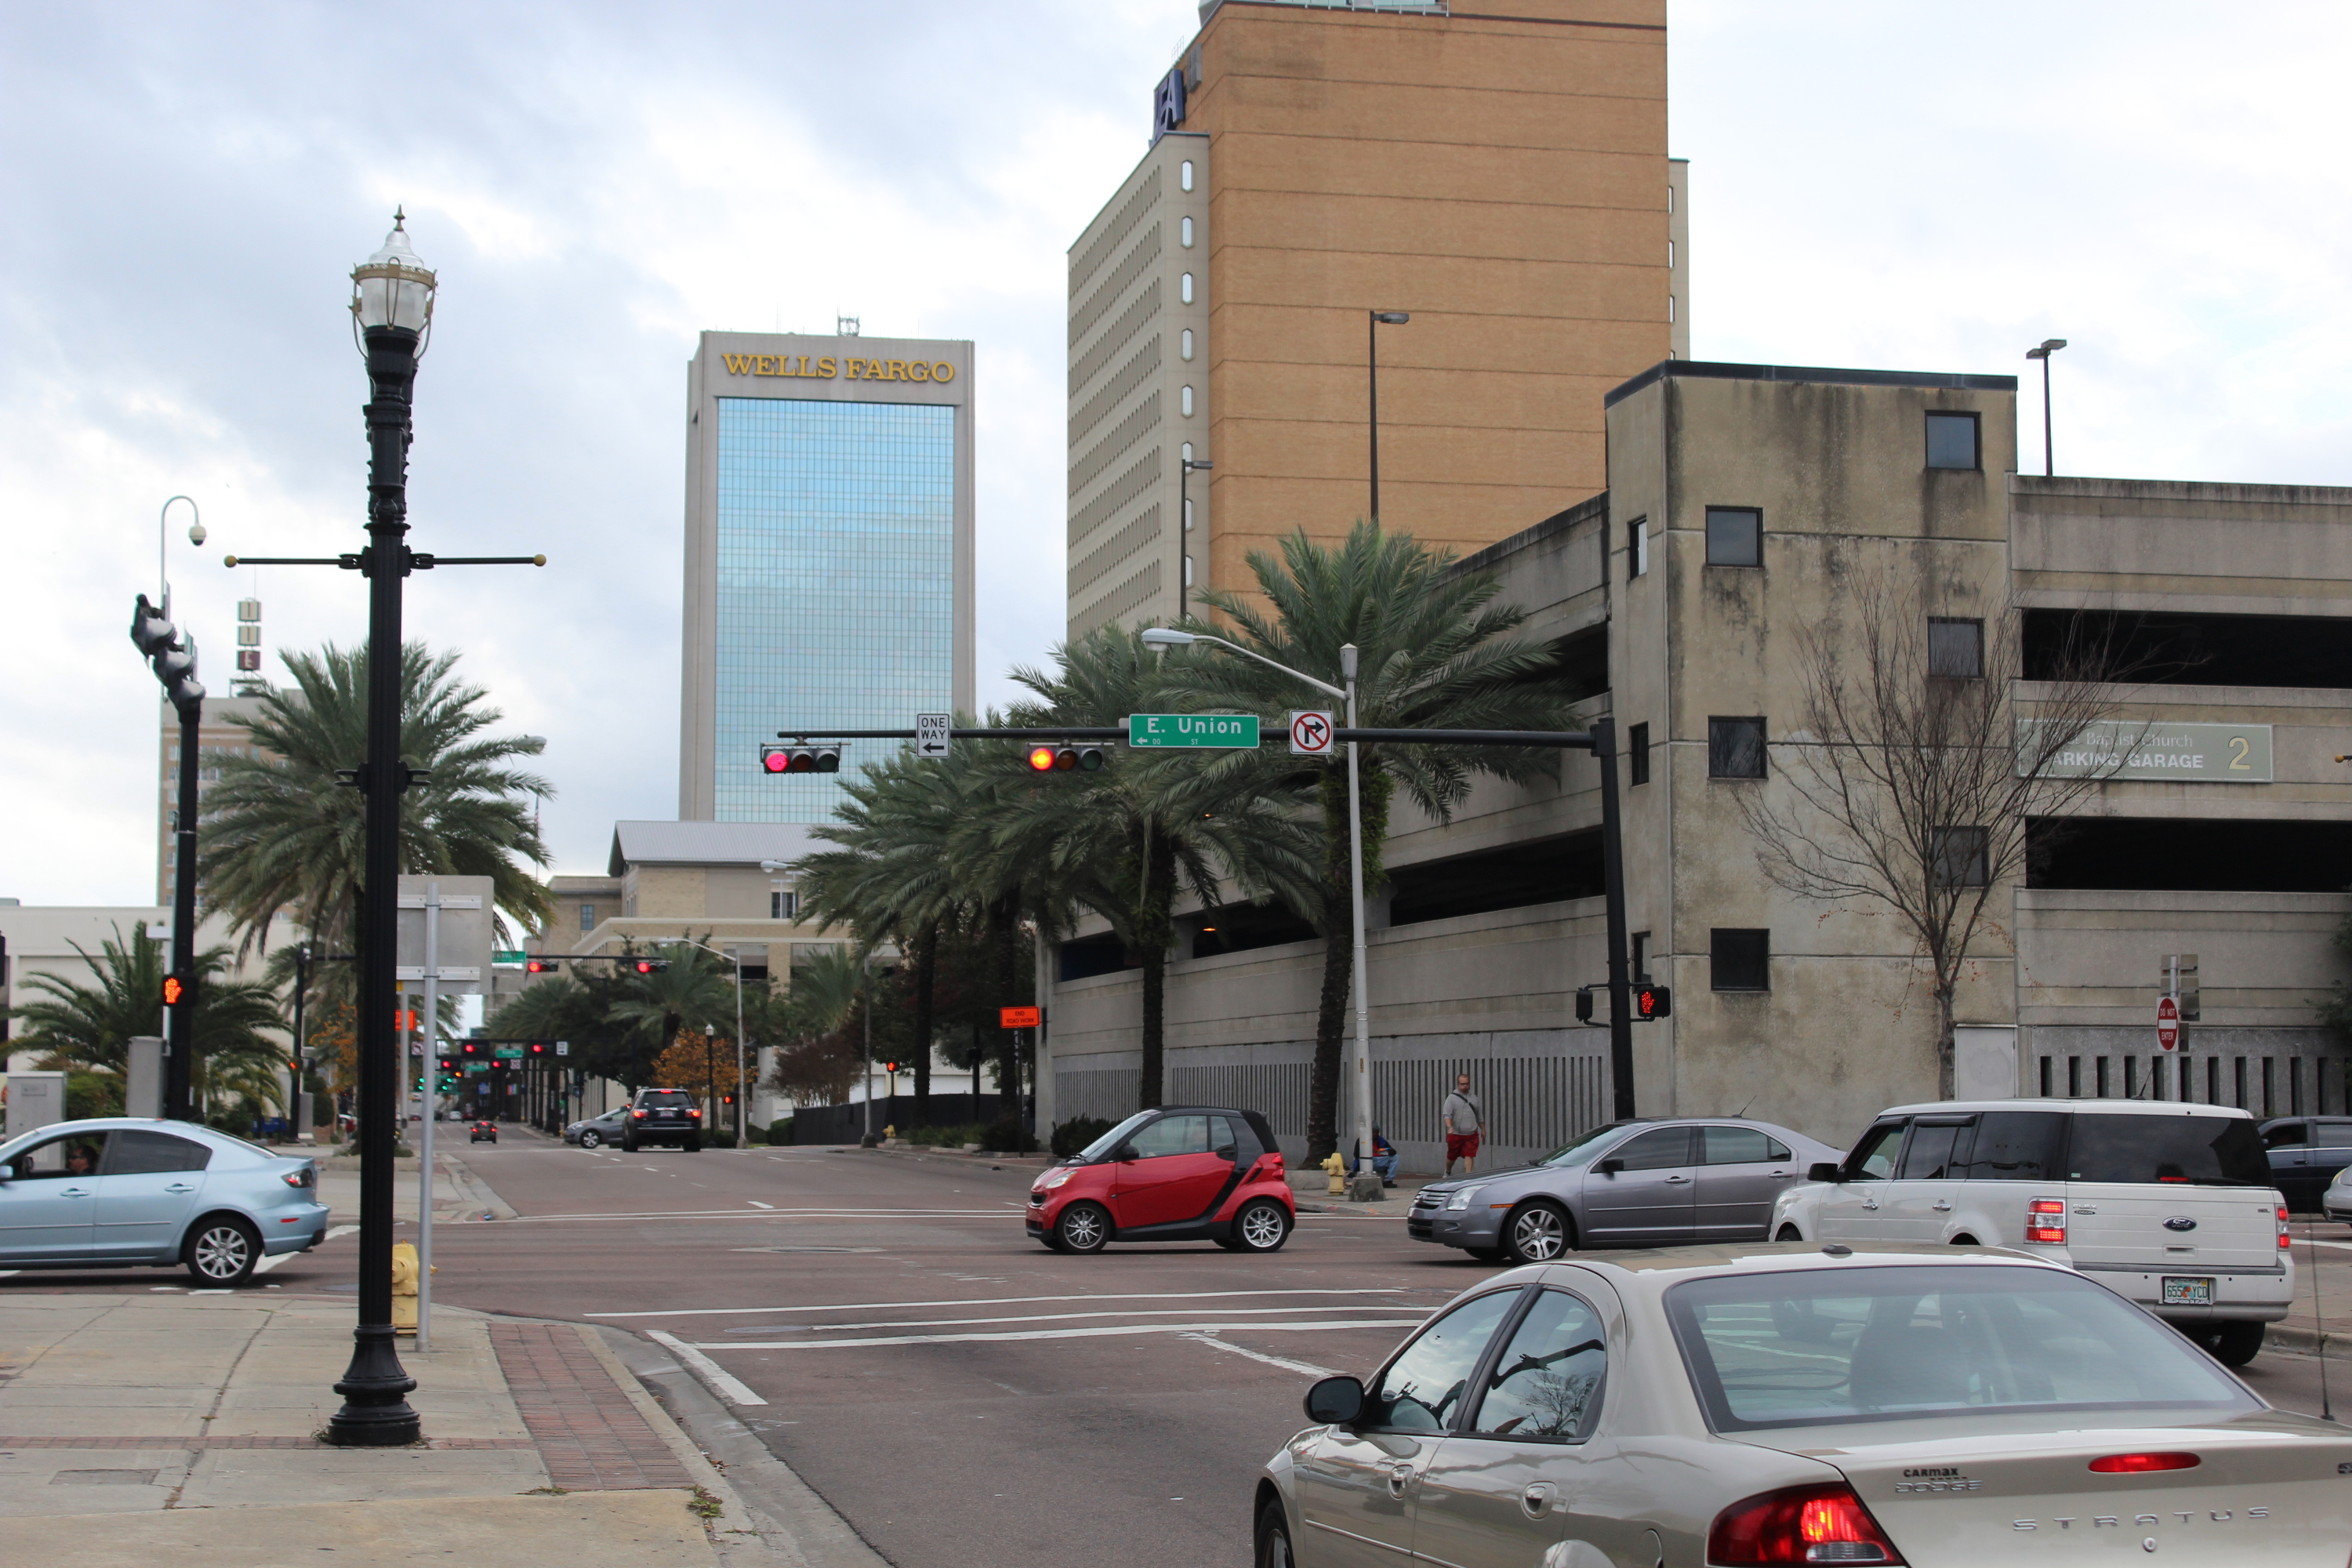 background image, Florida intersection with Smart Car and Wells Fargo building in the background